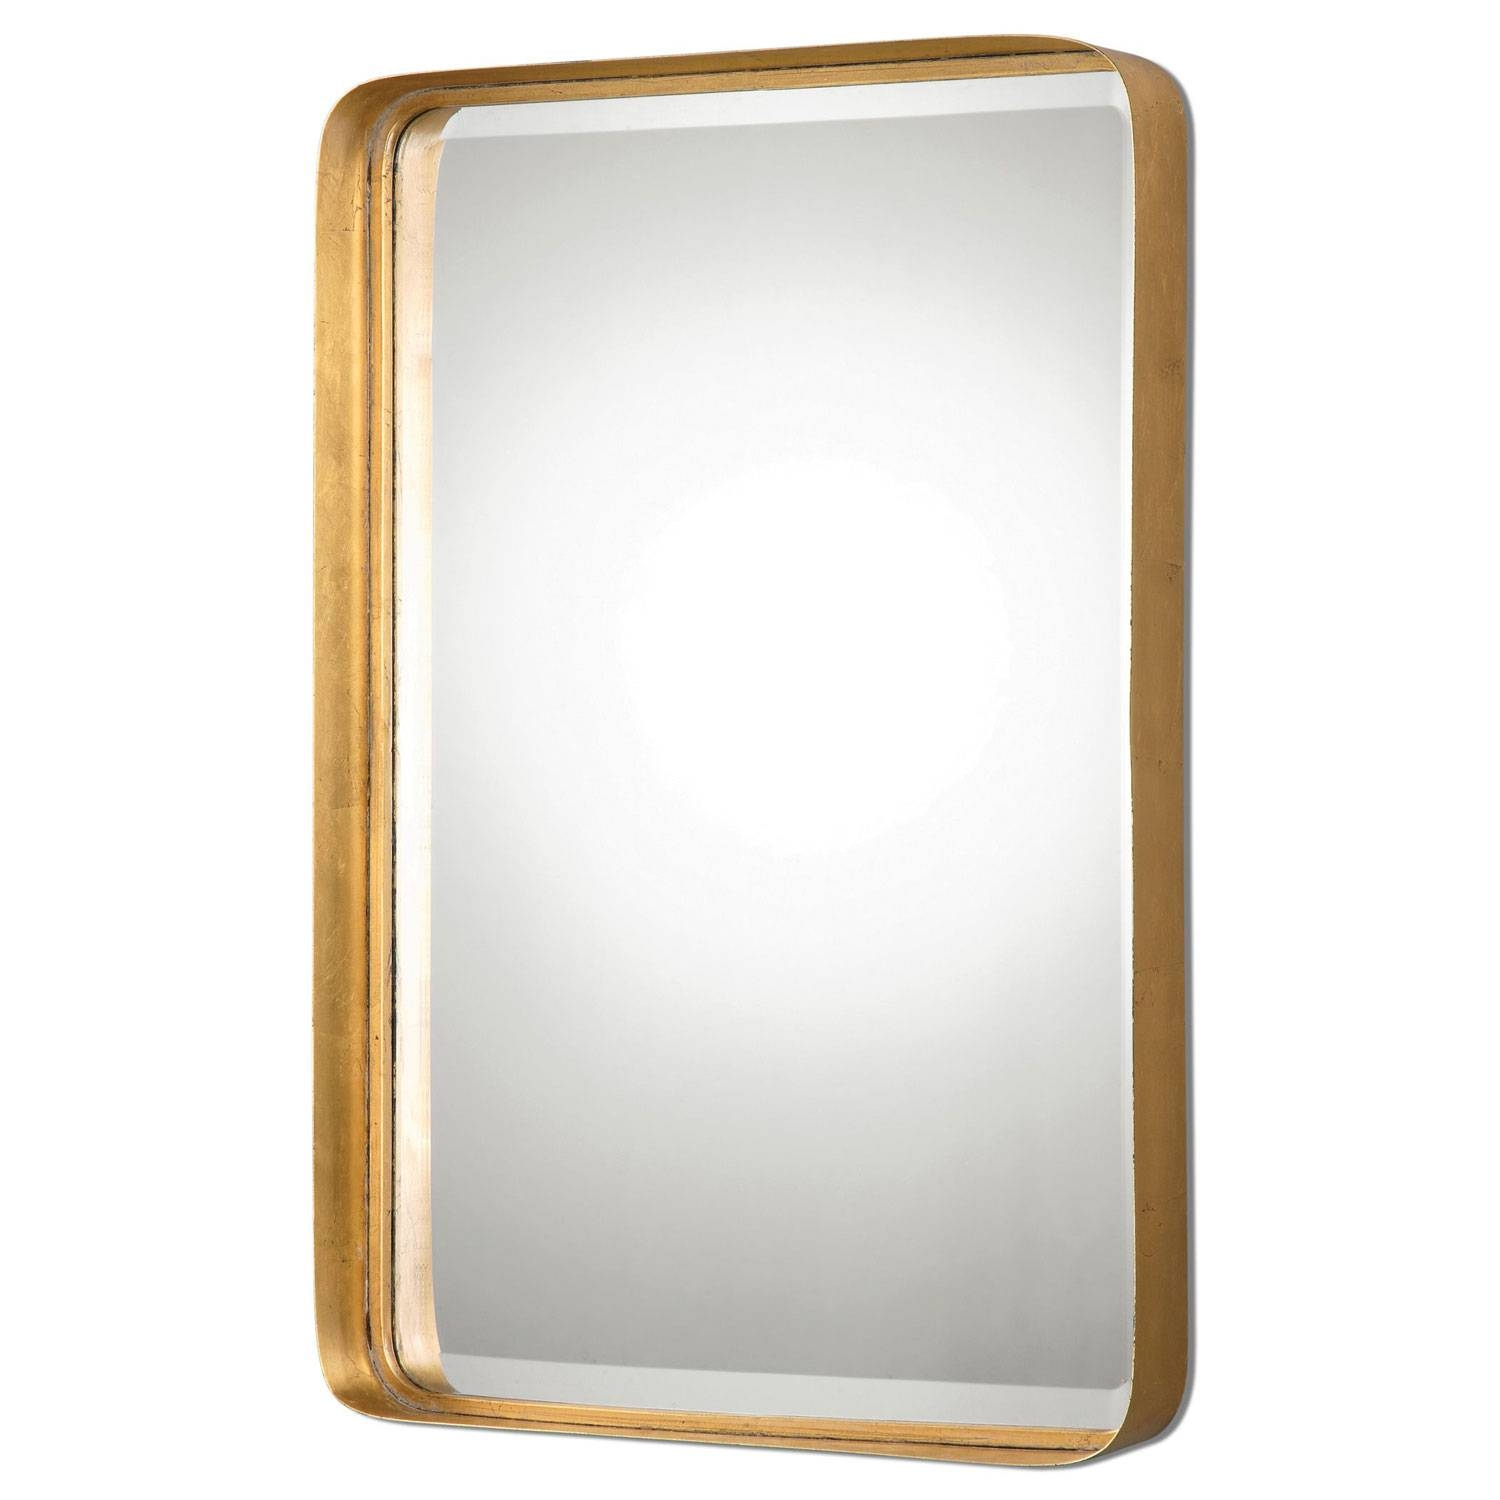 Contemporary Mirrors | Bellacor With Regard To Contemporary Mirrors (View 6 of 25)